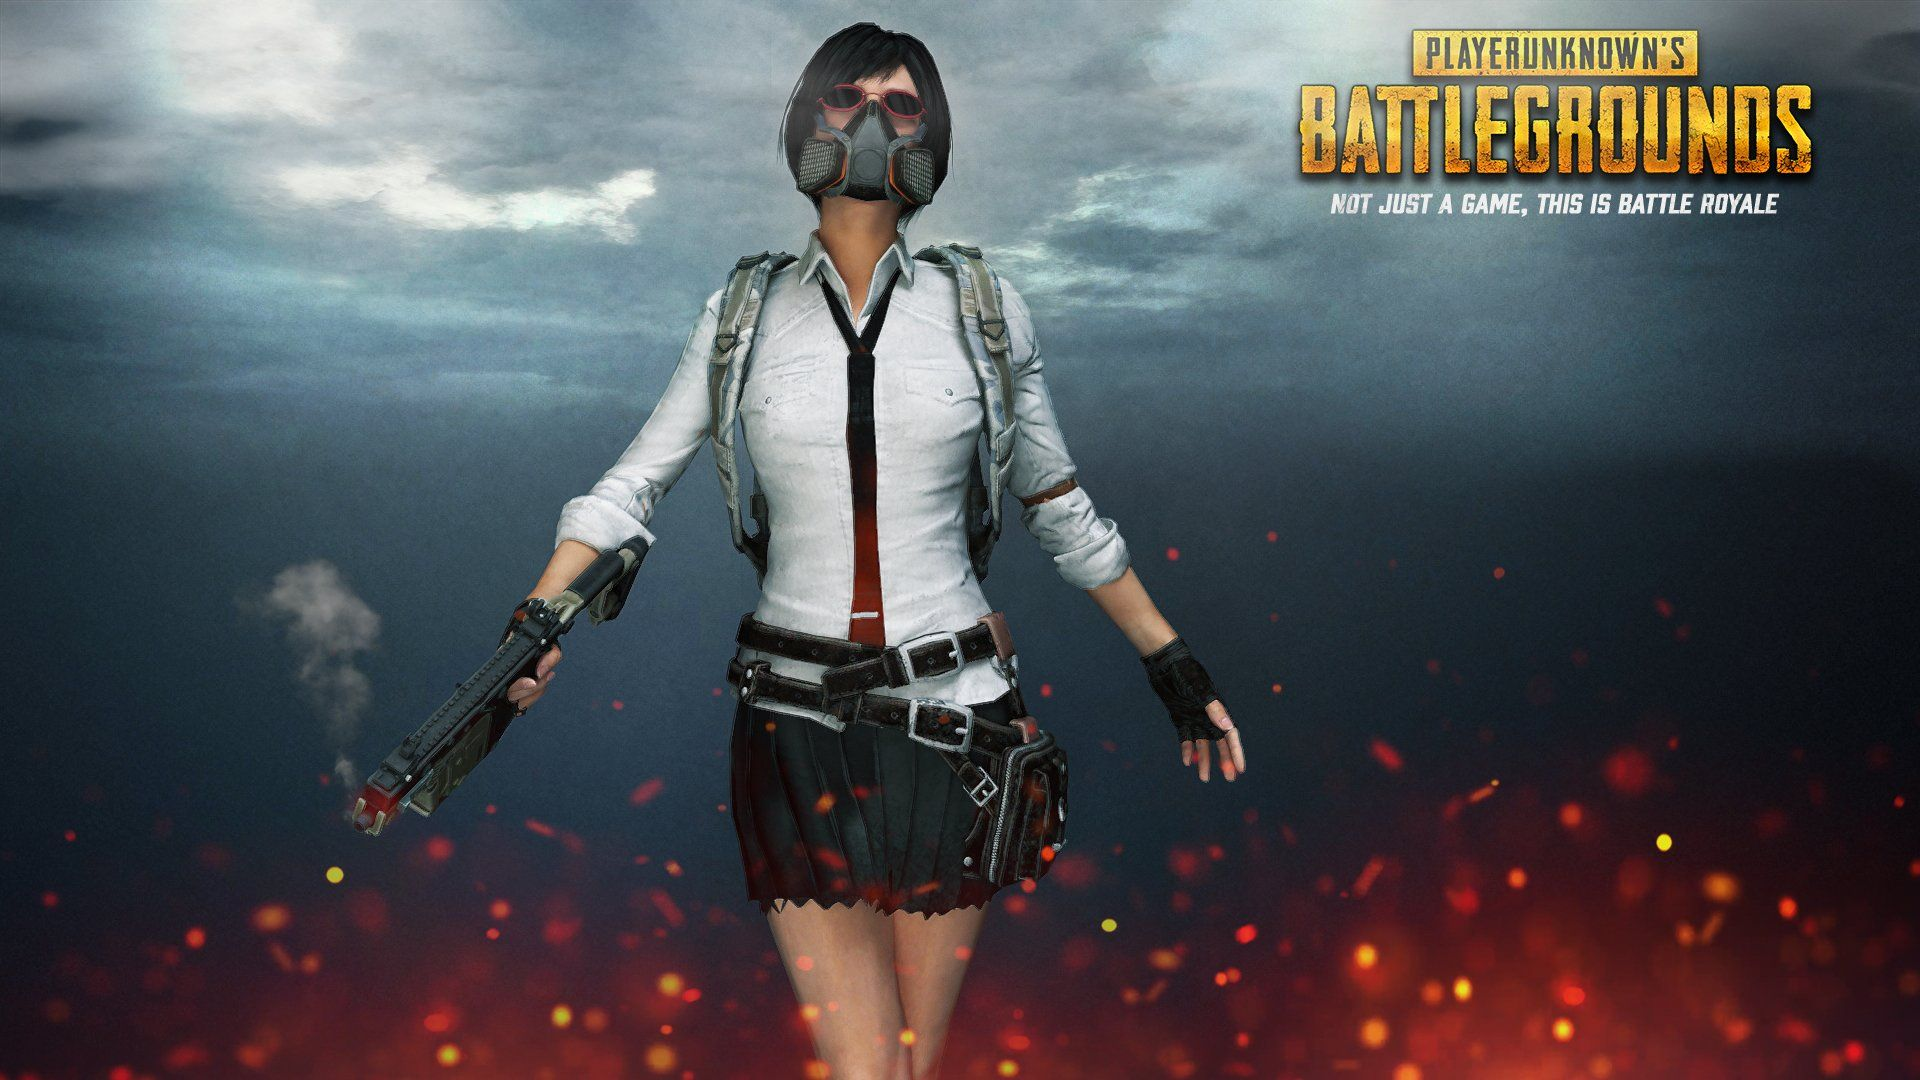 Pubg Full Hd Mobile Wallpapers: Video Game PlayerUnknown's Battlegrounds Wallpaper